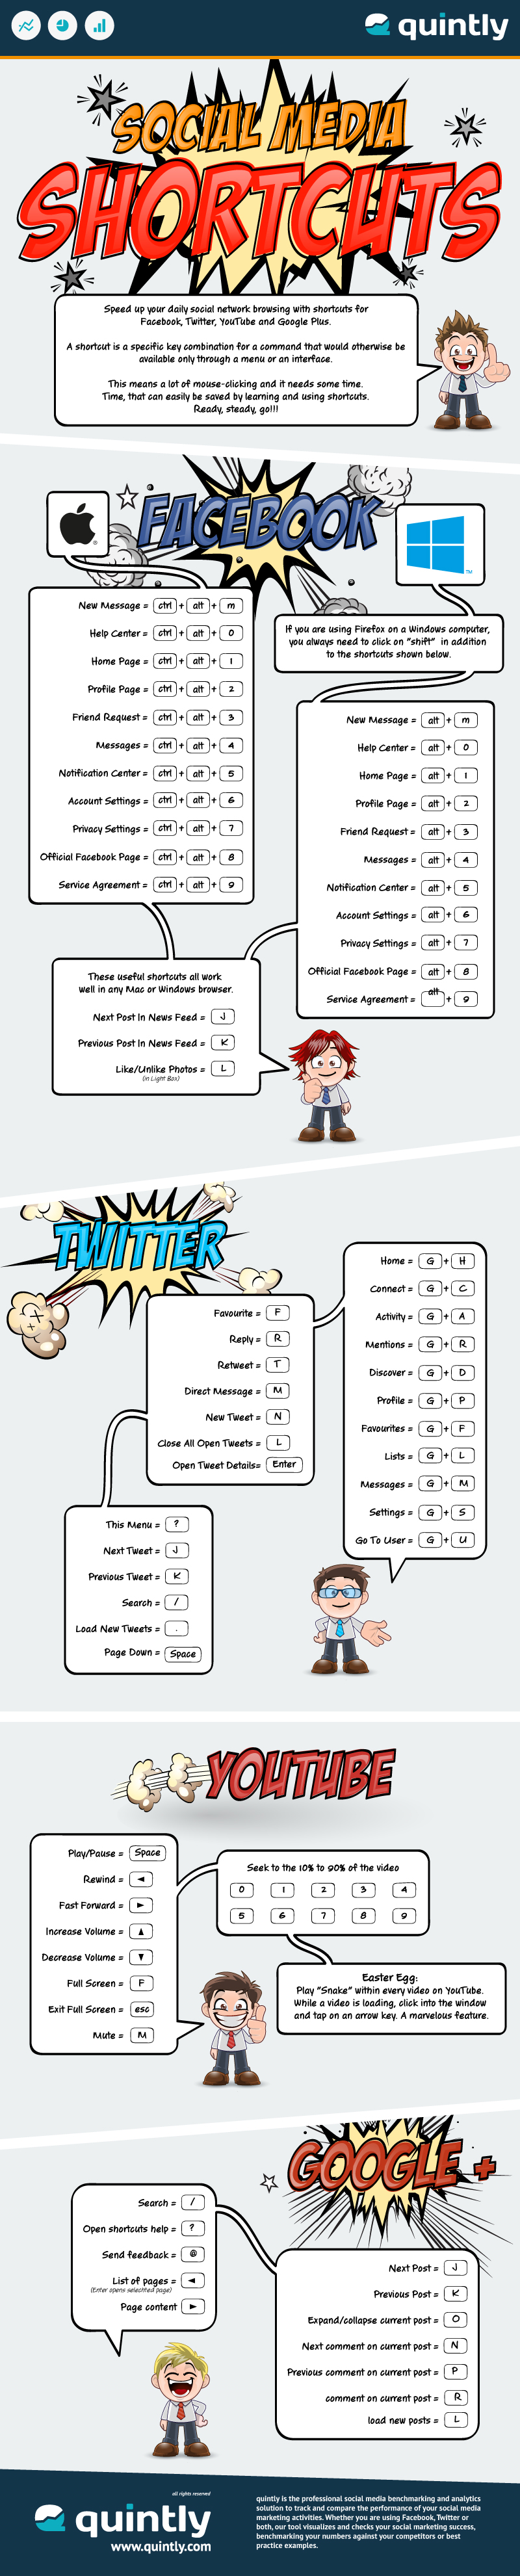 quintly infographic social media shortcuts Zeit sparen mit Social Media Shortcuts